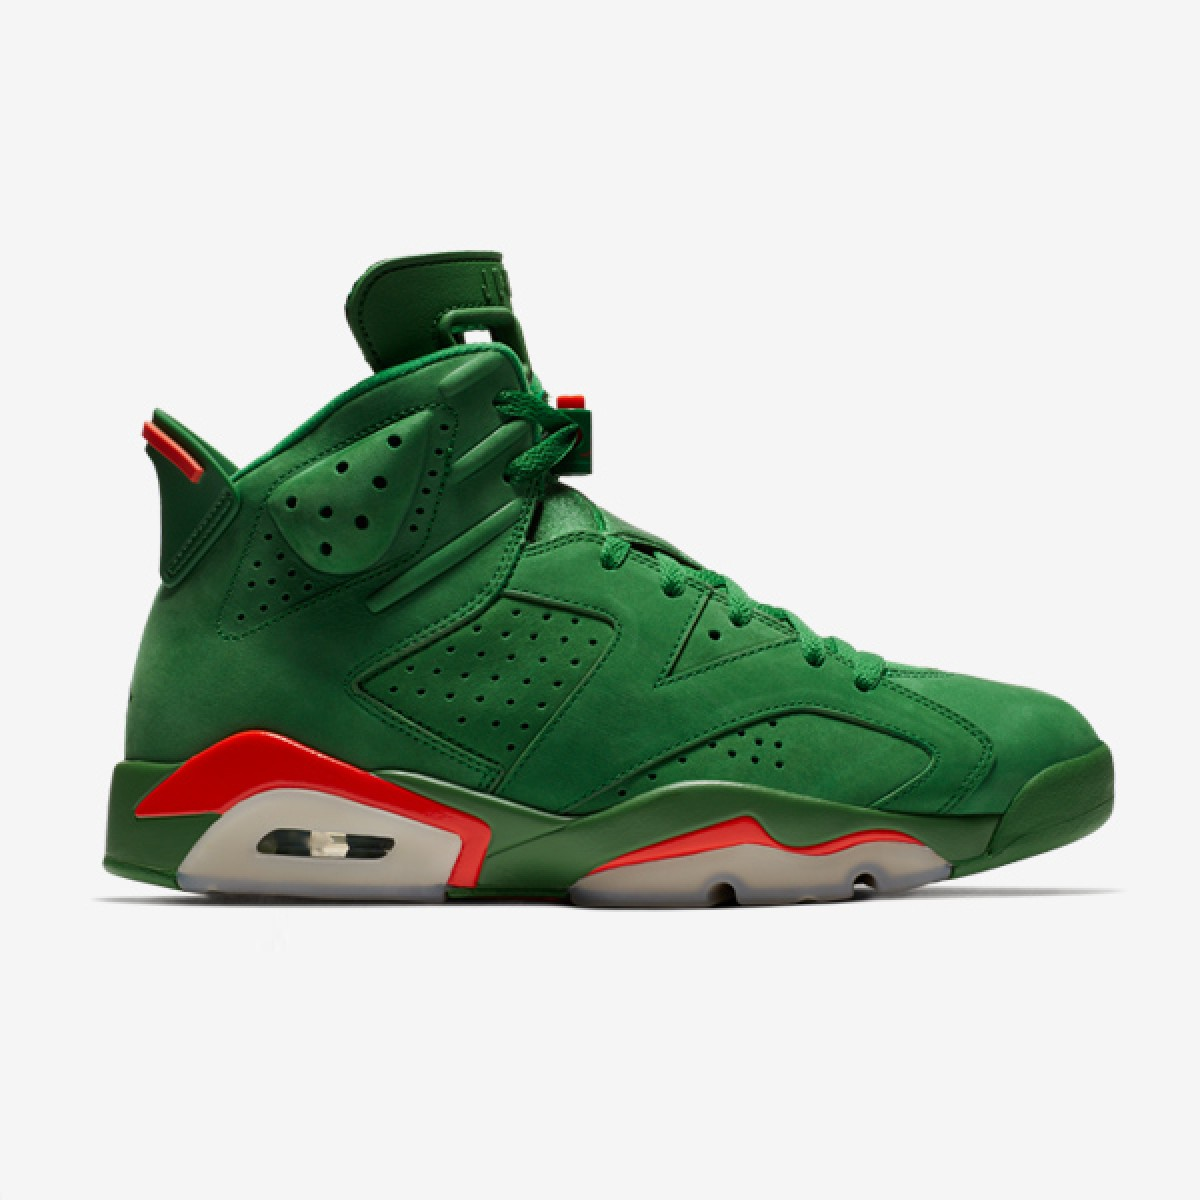 Air Jordan 6 Retro G8TRD 'Green'